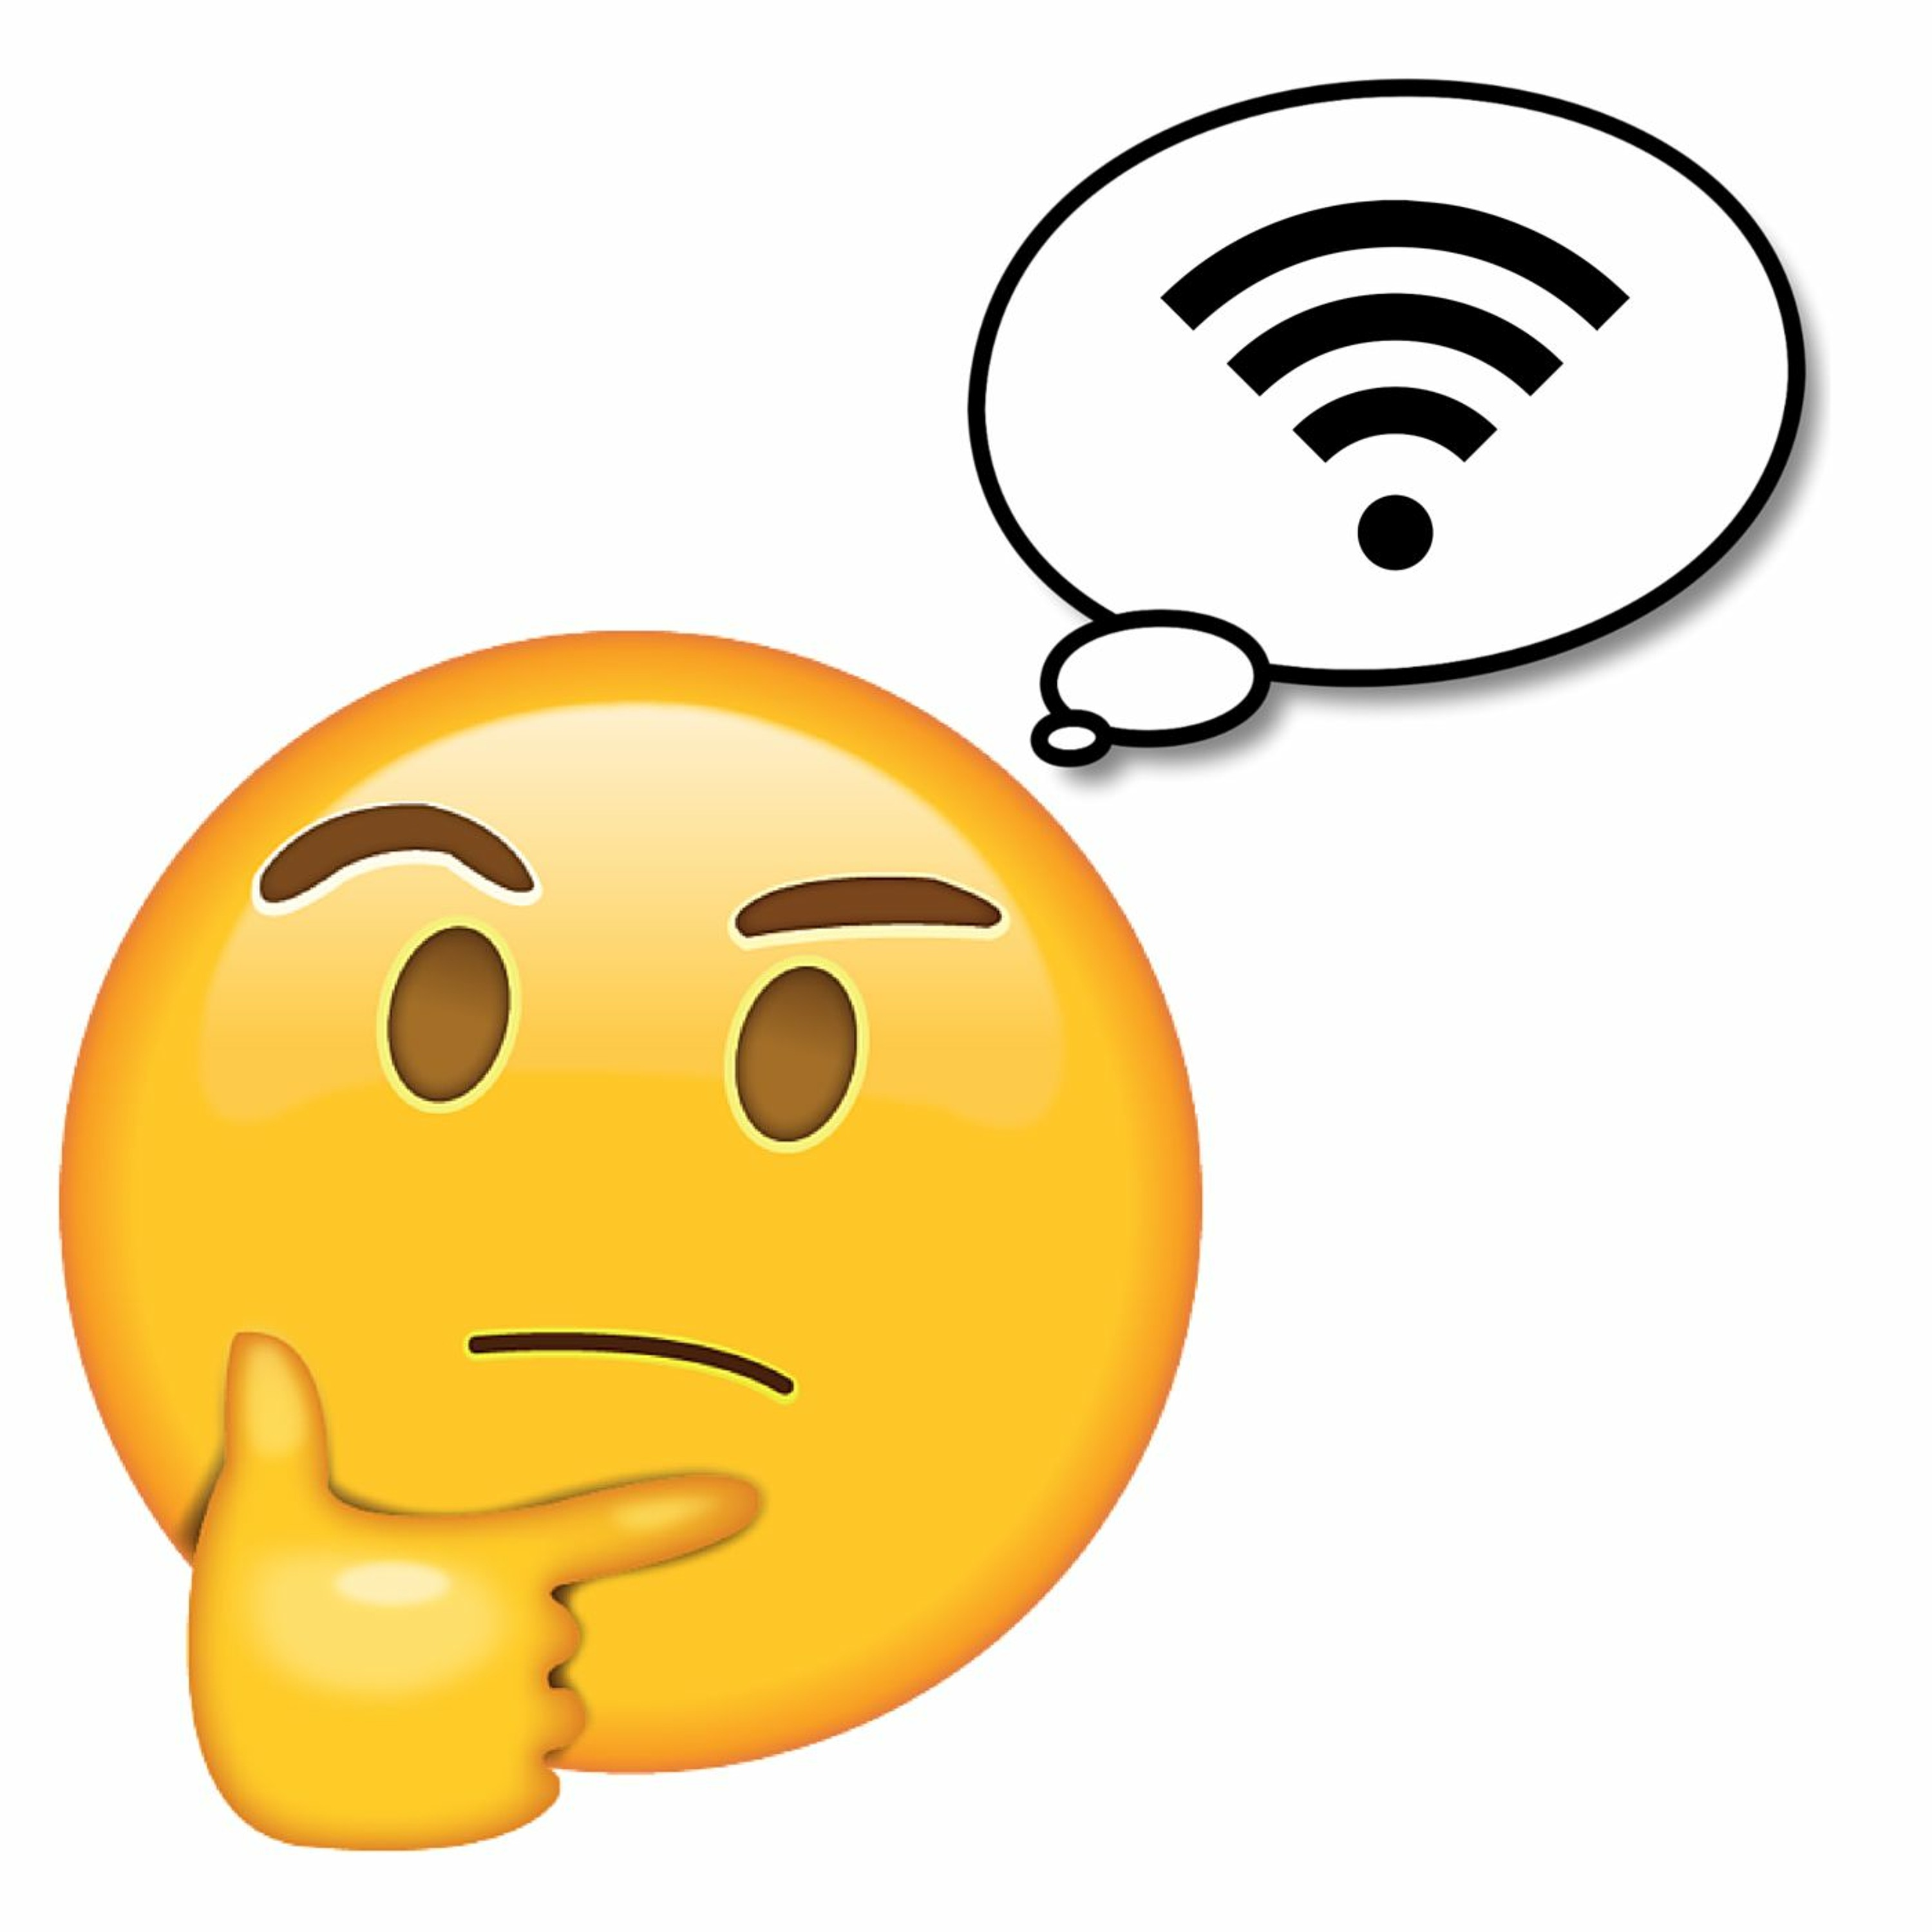 What's The Big Deal With WiFi? (feat. Riaan Graham)